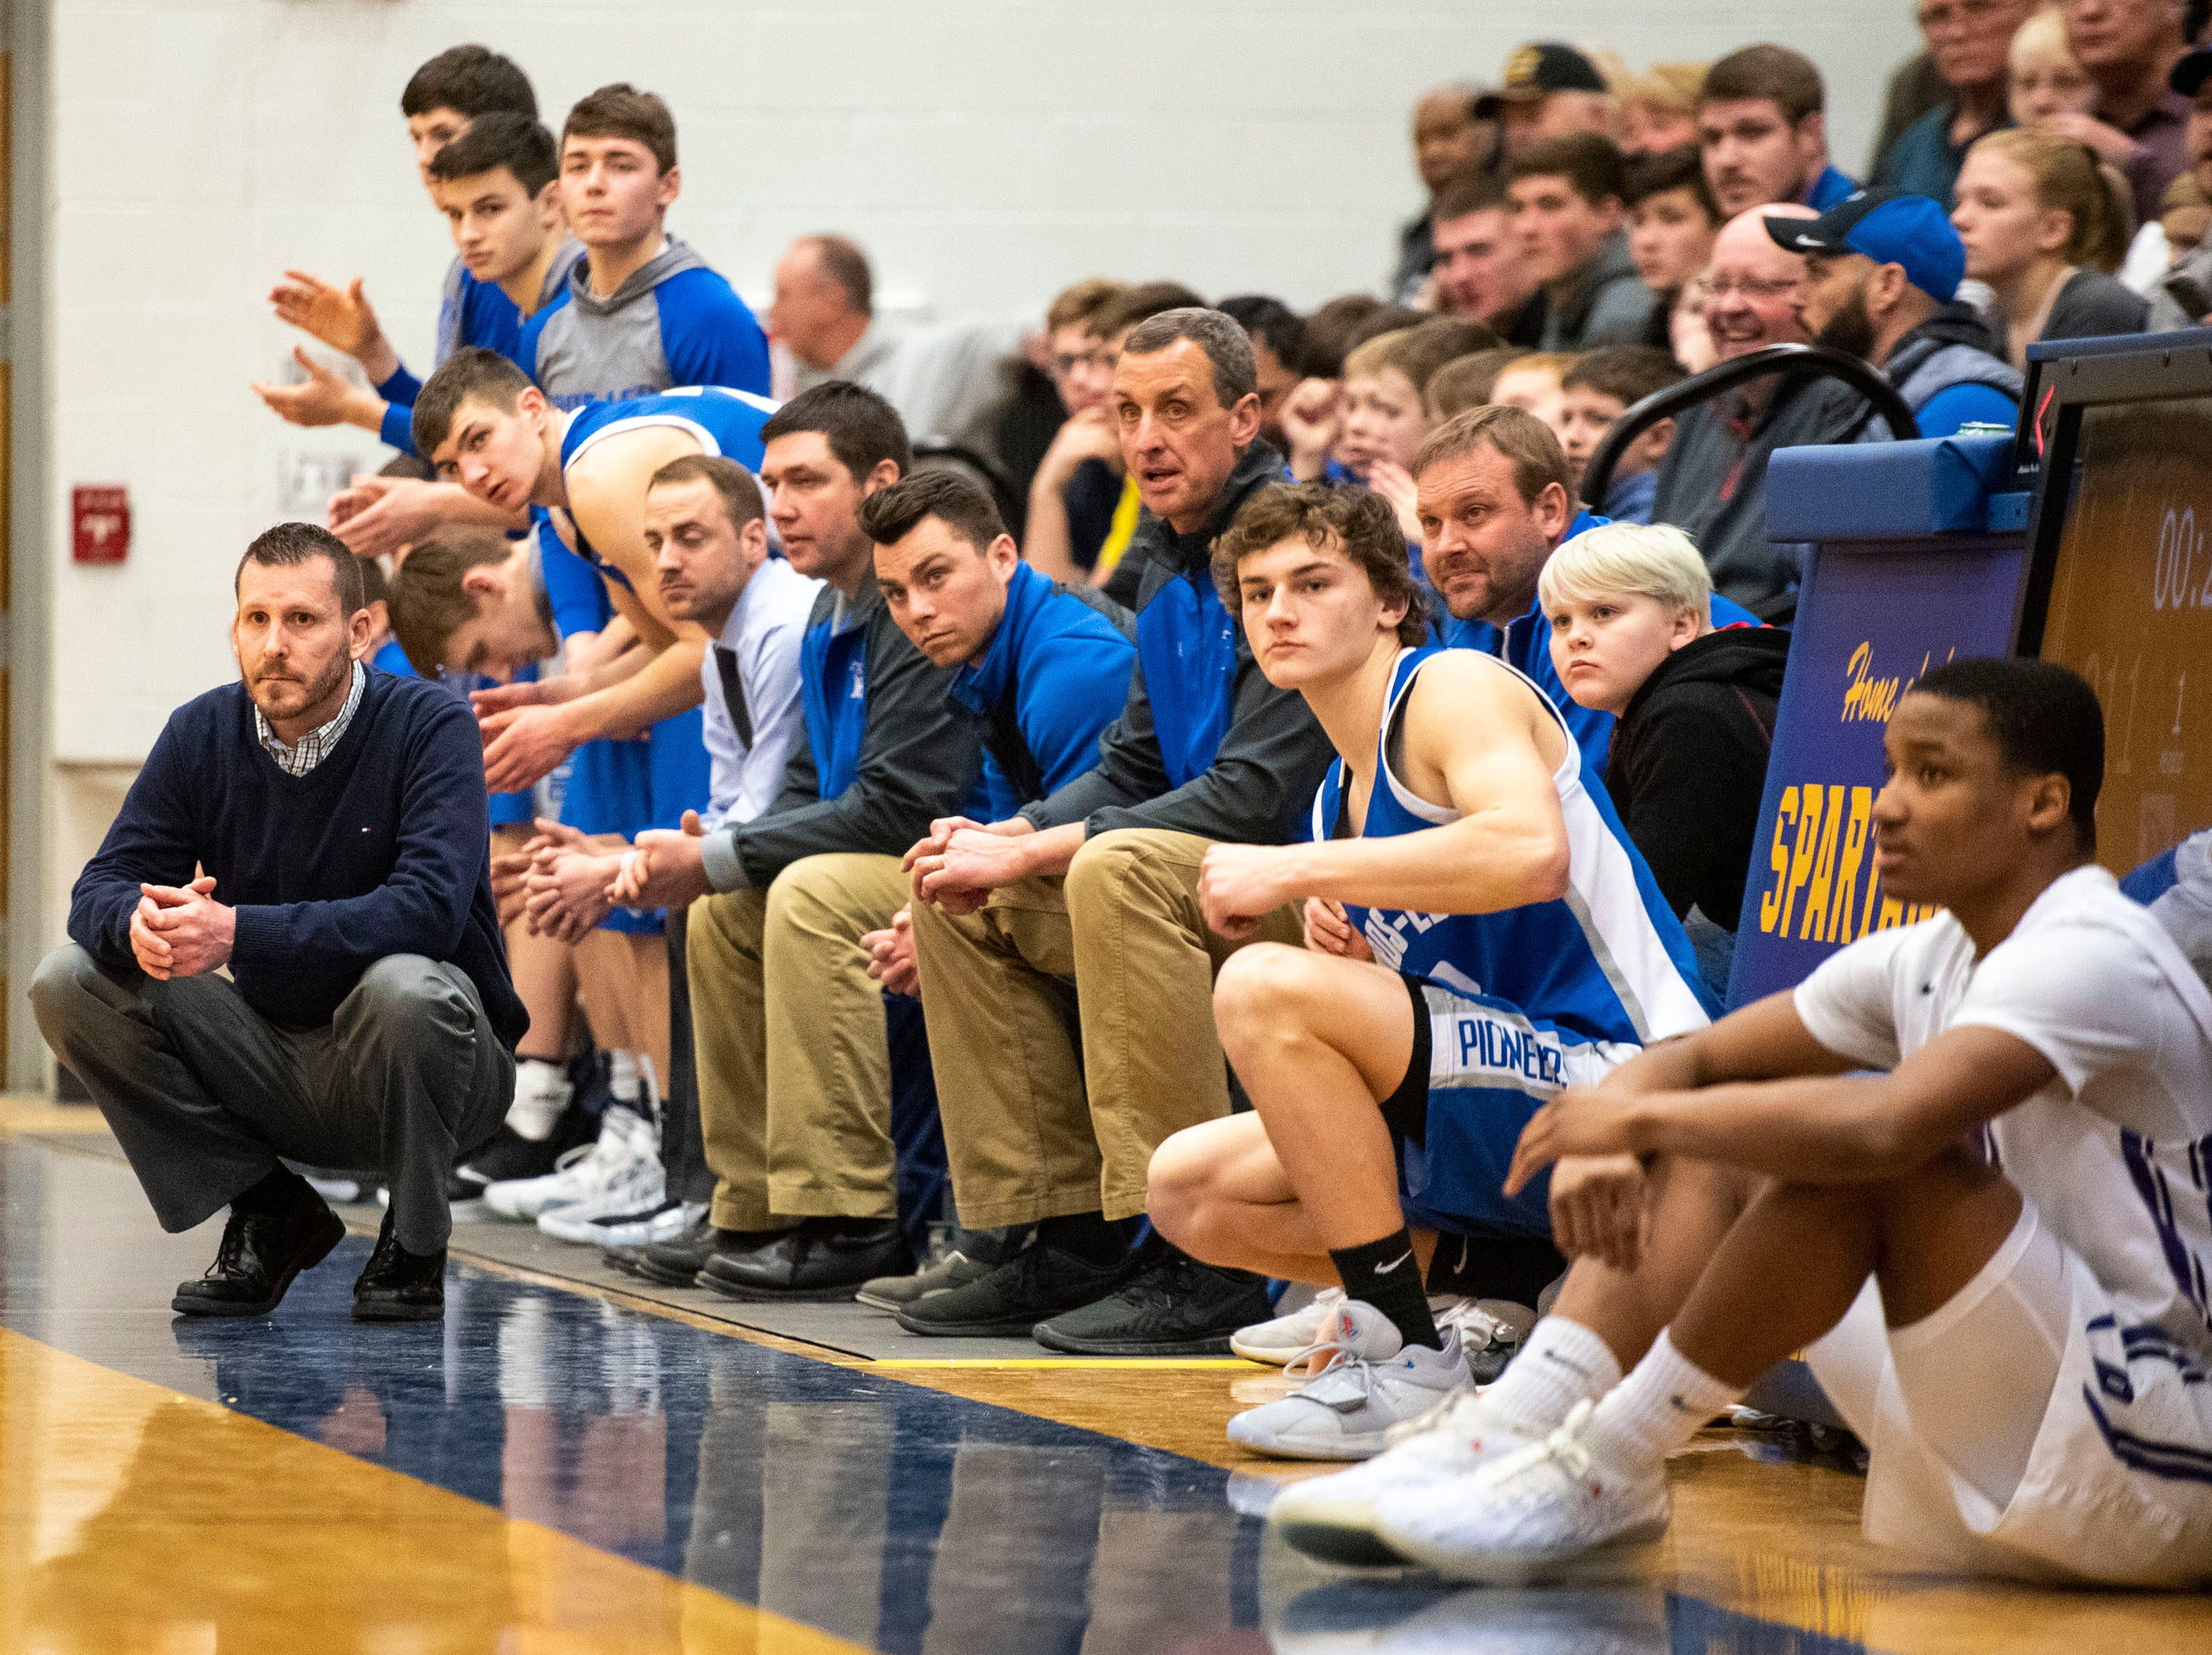 Cros-Lex High School head basketball coach Lance Campbell watches from the sidelines in the MHSAA Division 2 regional basketball game against Pontiac High School Tuesday, March 5, 2019 at Imlay City High School.